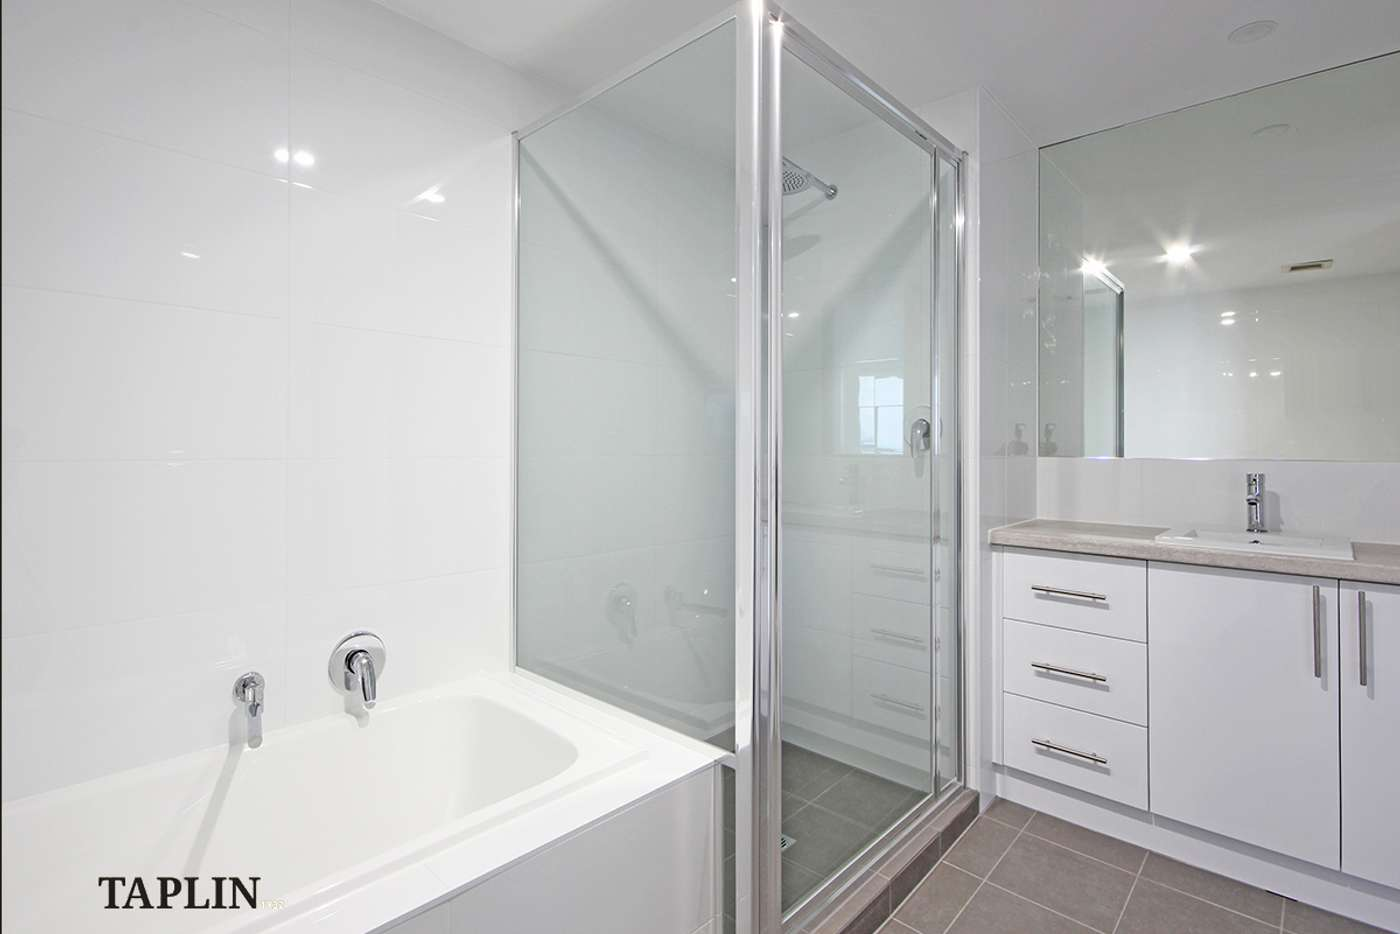 Seventh view of Homely apartment listing, 52/5-11 Colley Terrace, Glenelg SA 5045